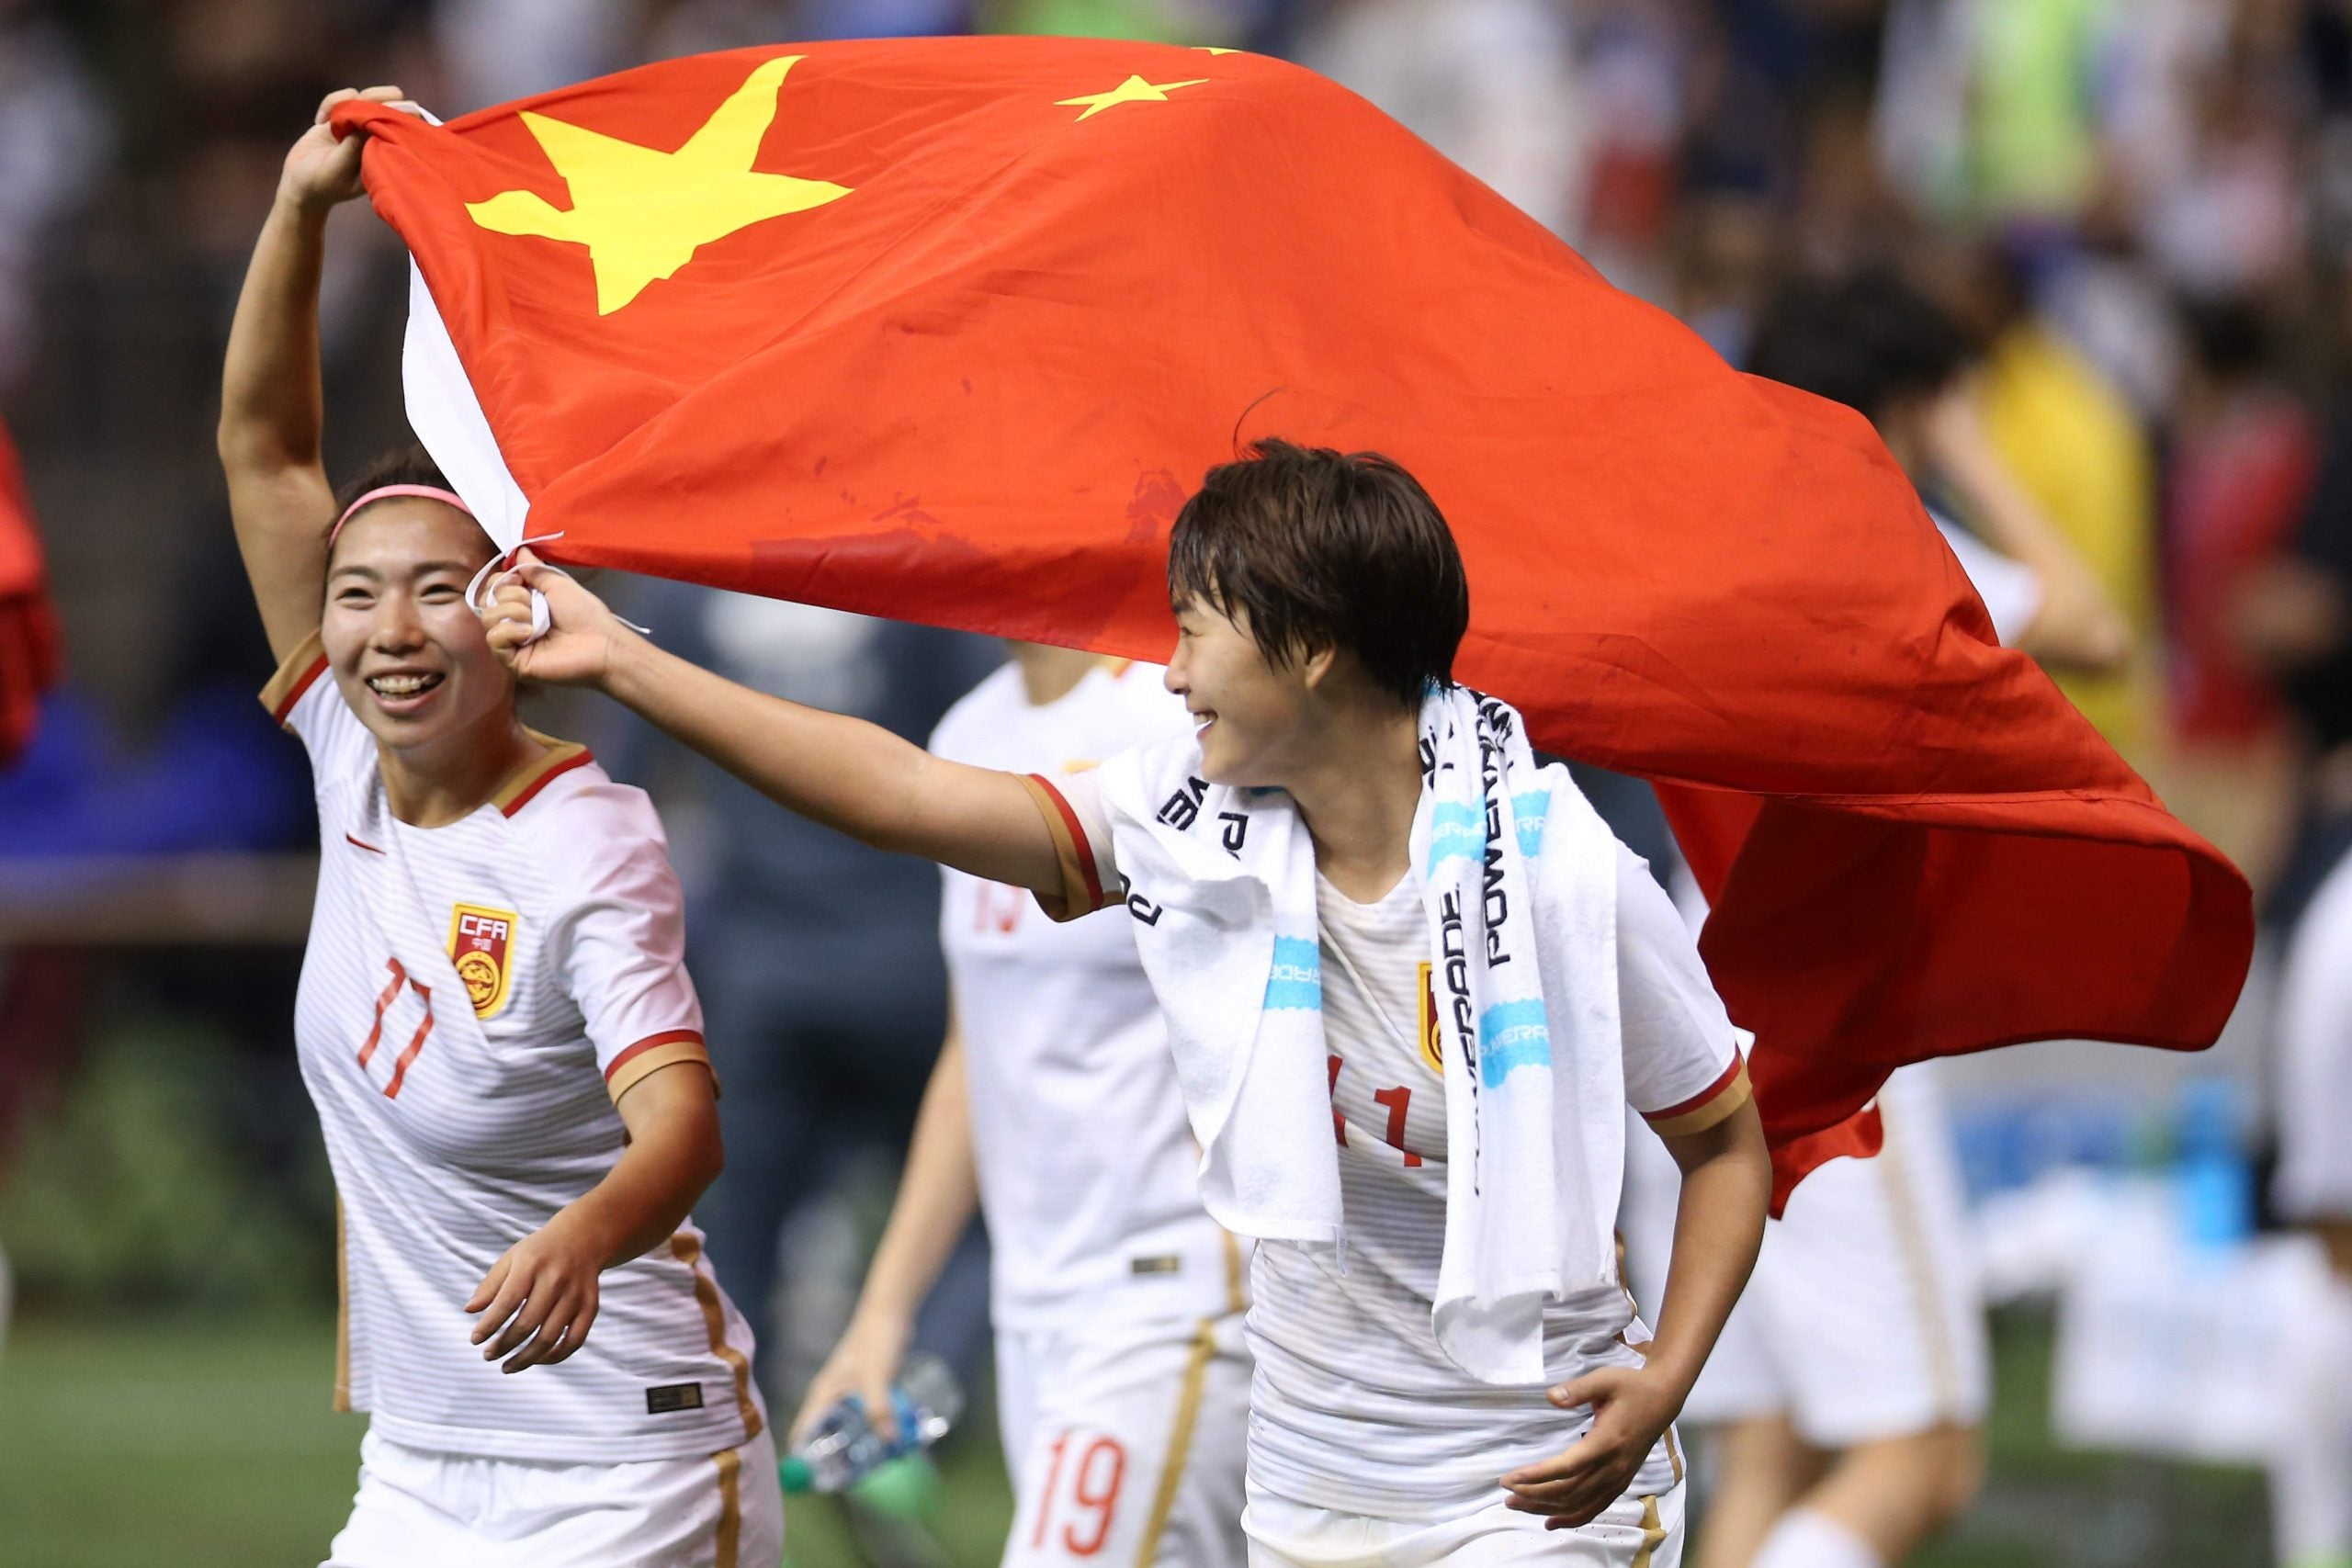 My ambition? Get to age 90 and see China dominate world football